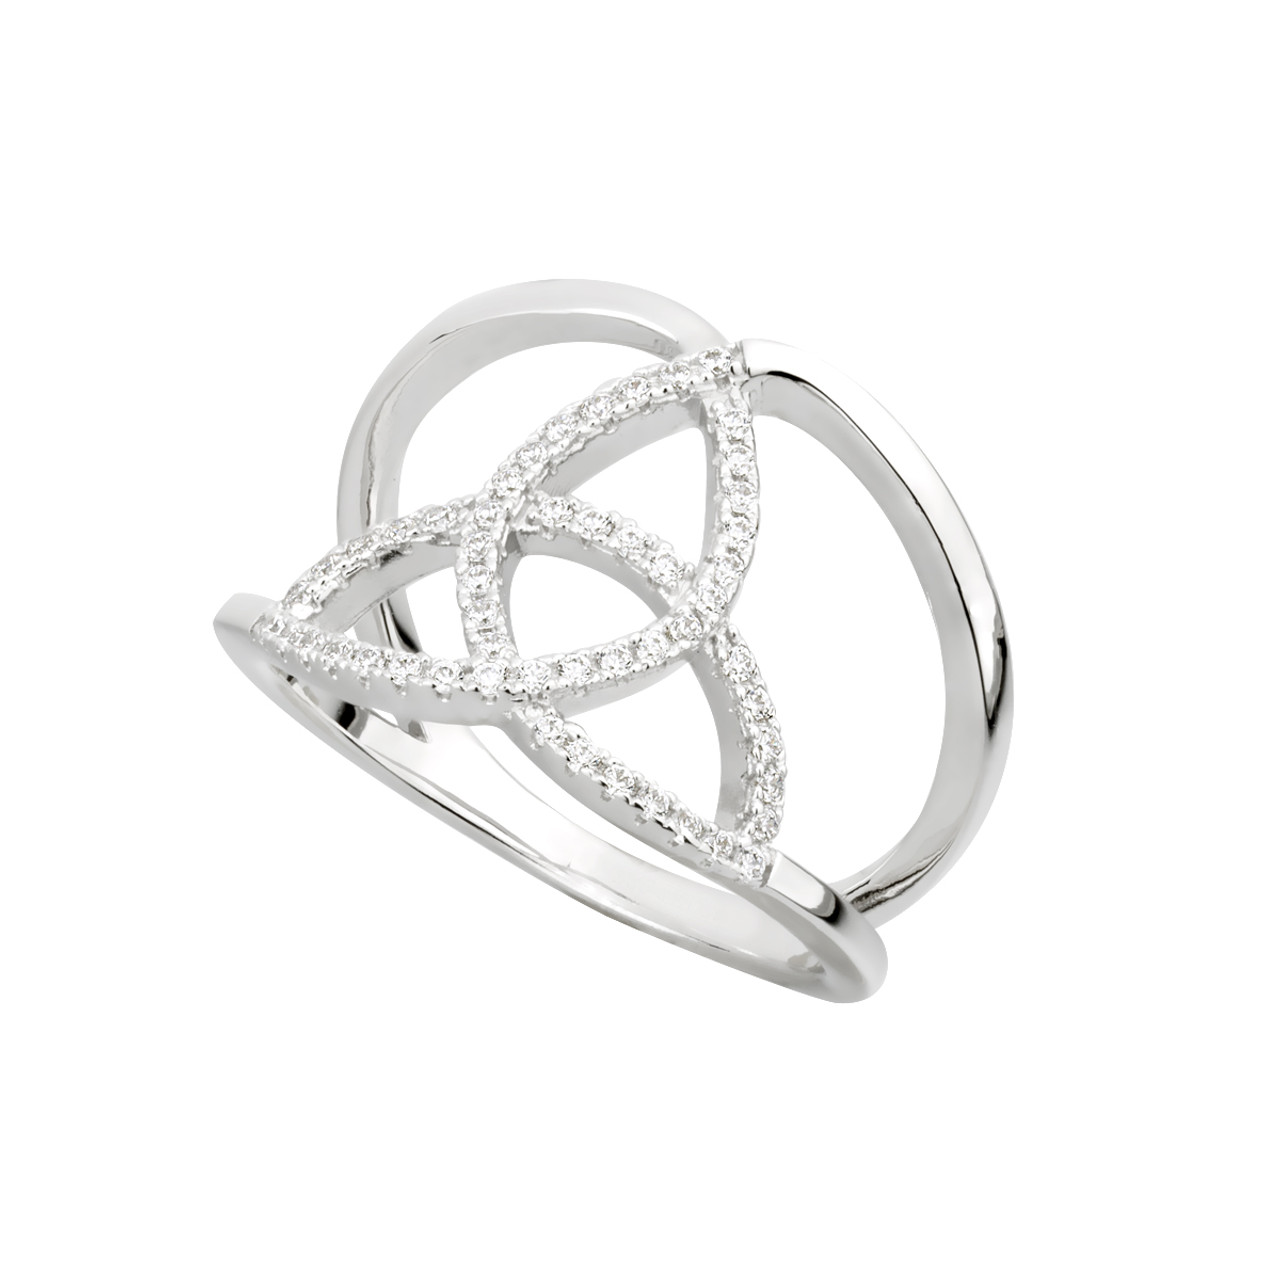 Women s Sterling Silver CZ Trinity Knot Ring - The Twisted Shamrock 06caa8d7fd